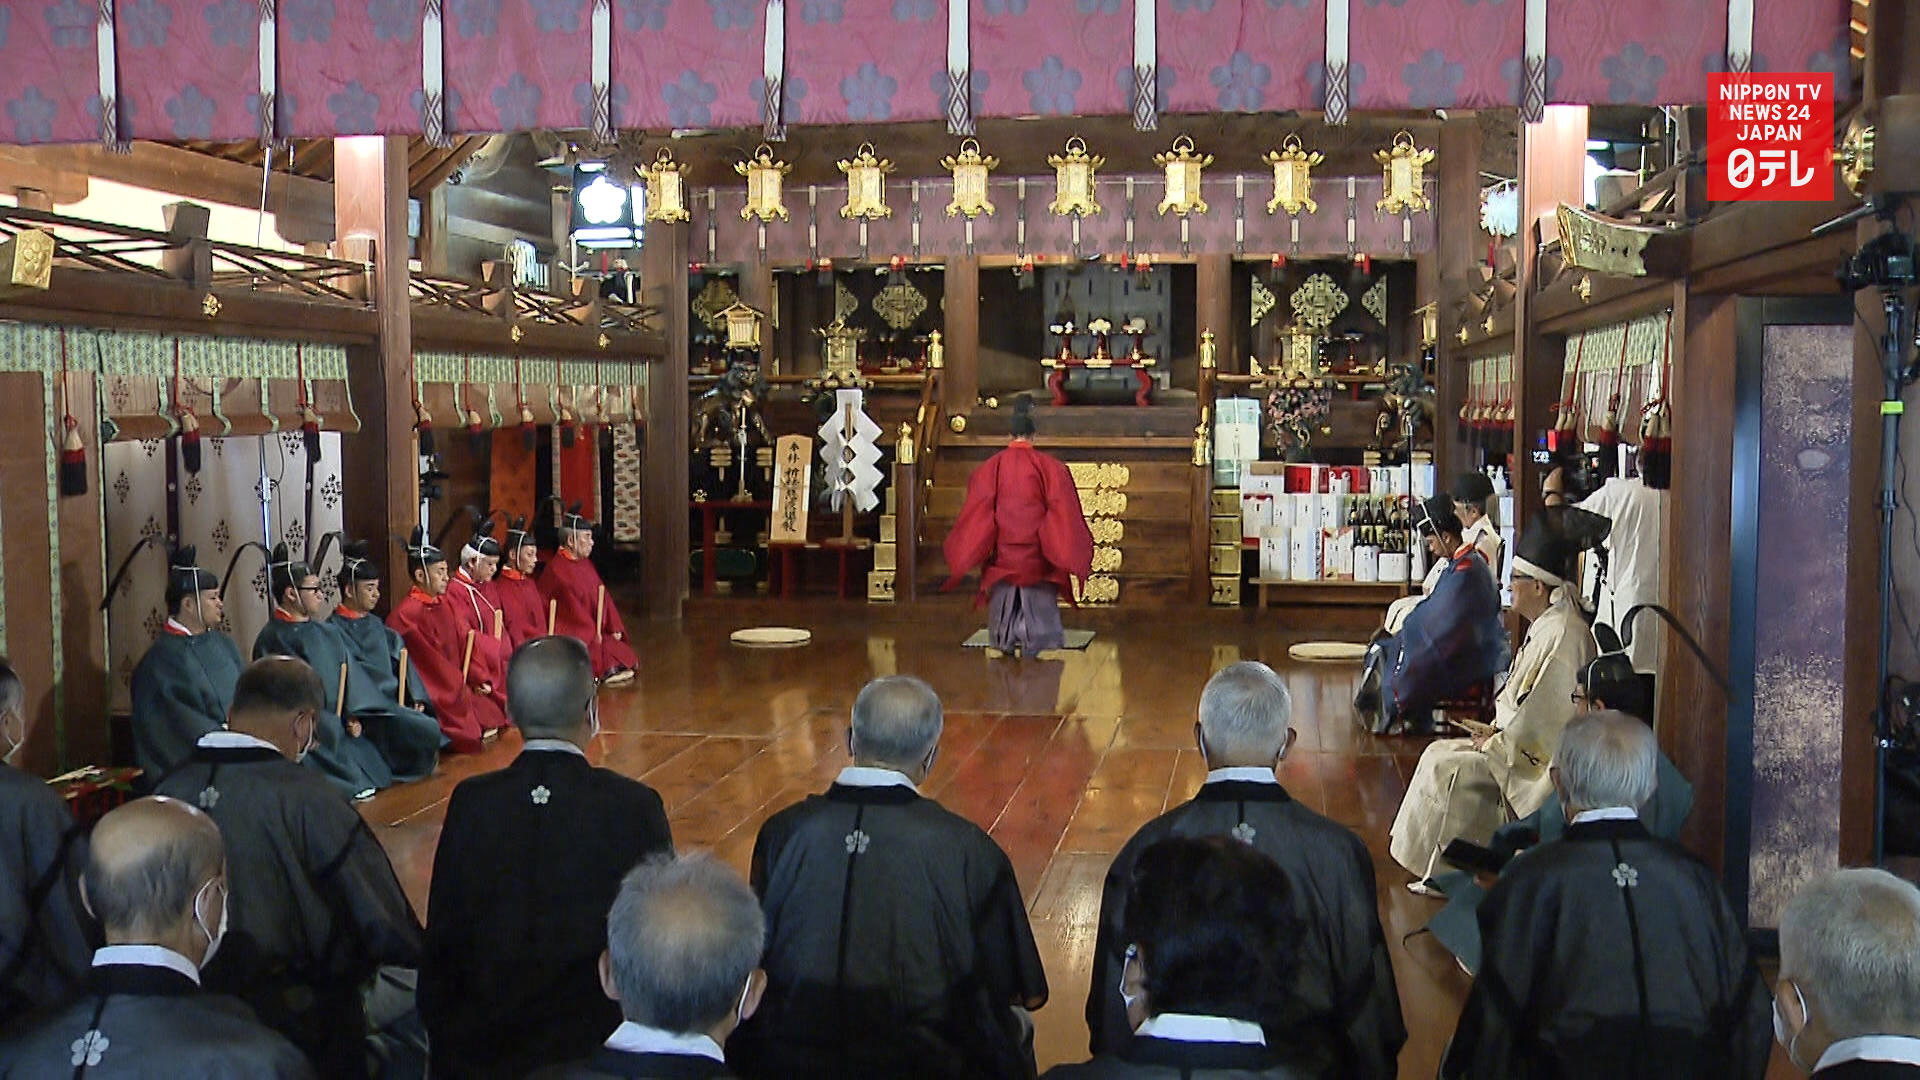 A usually private Shinto ritual streamed online